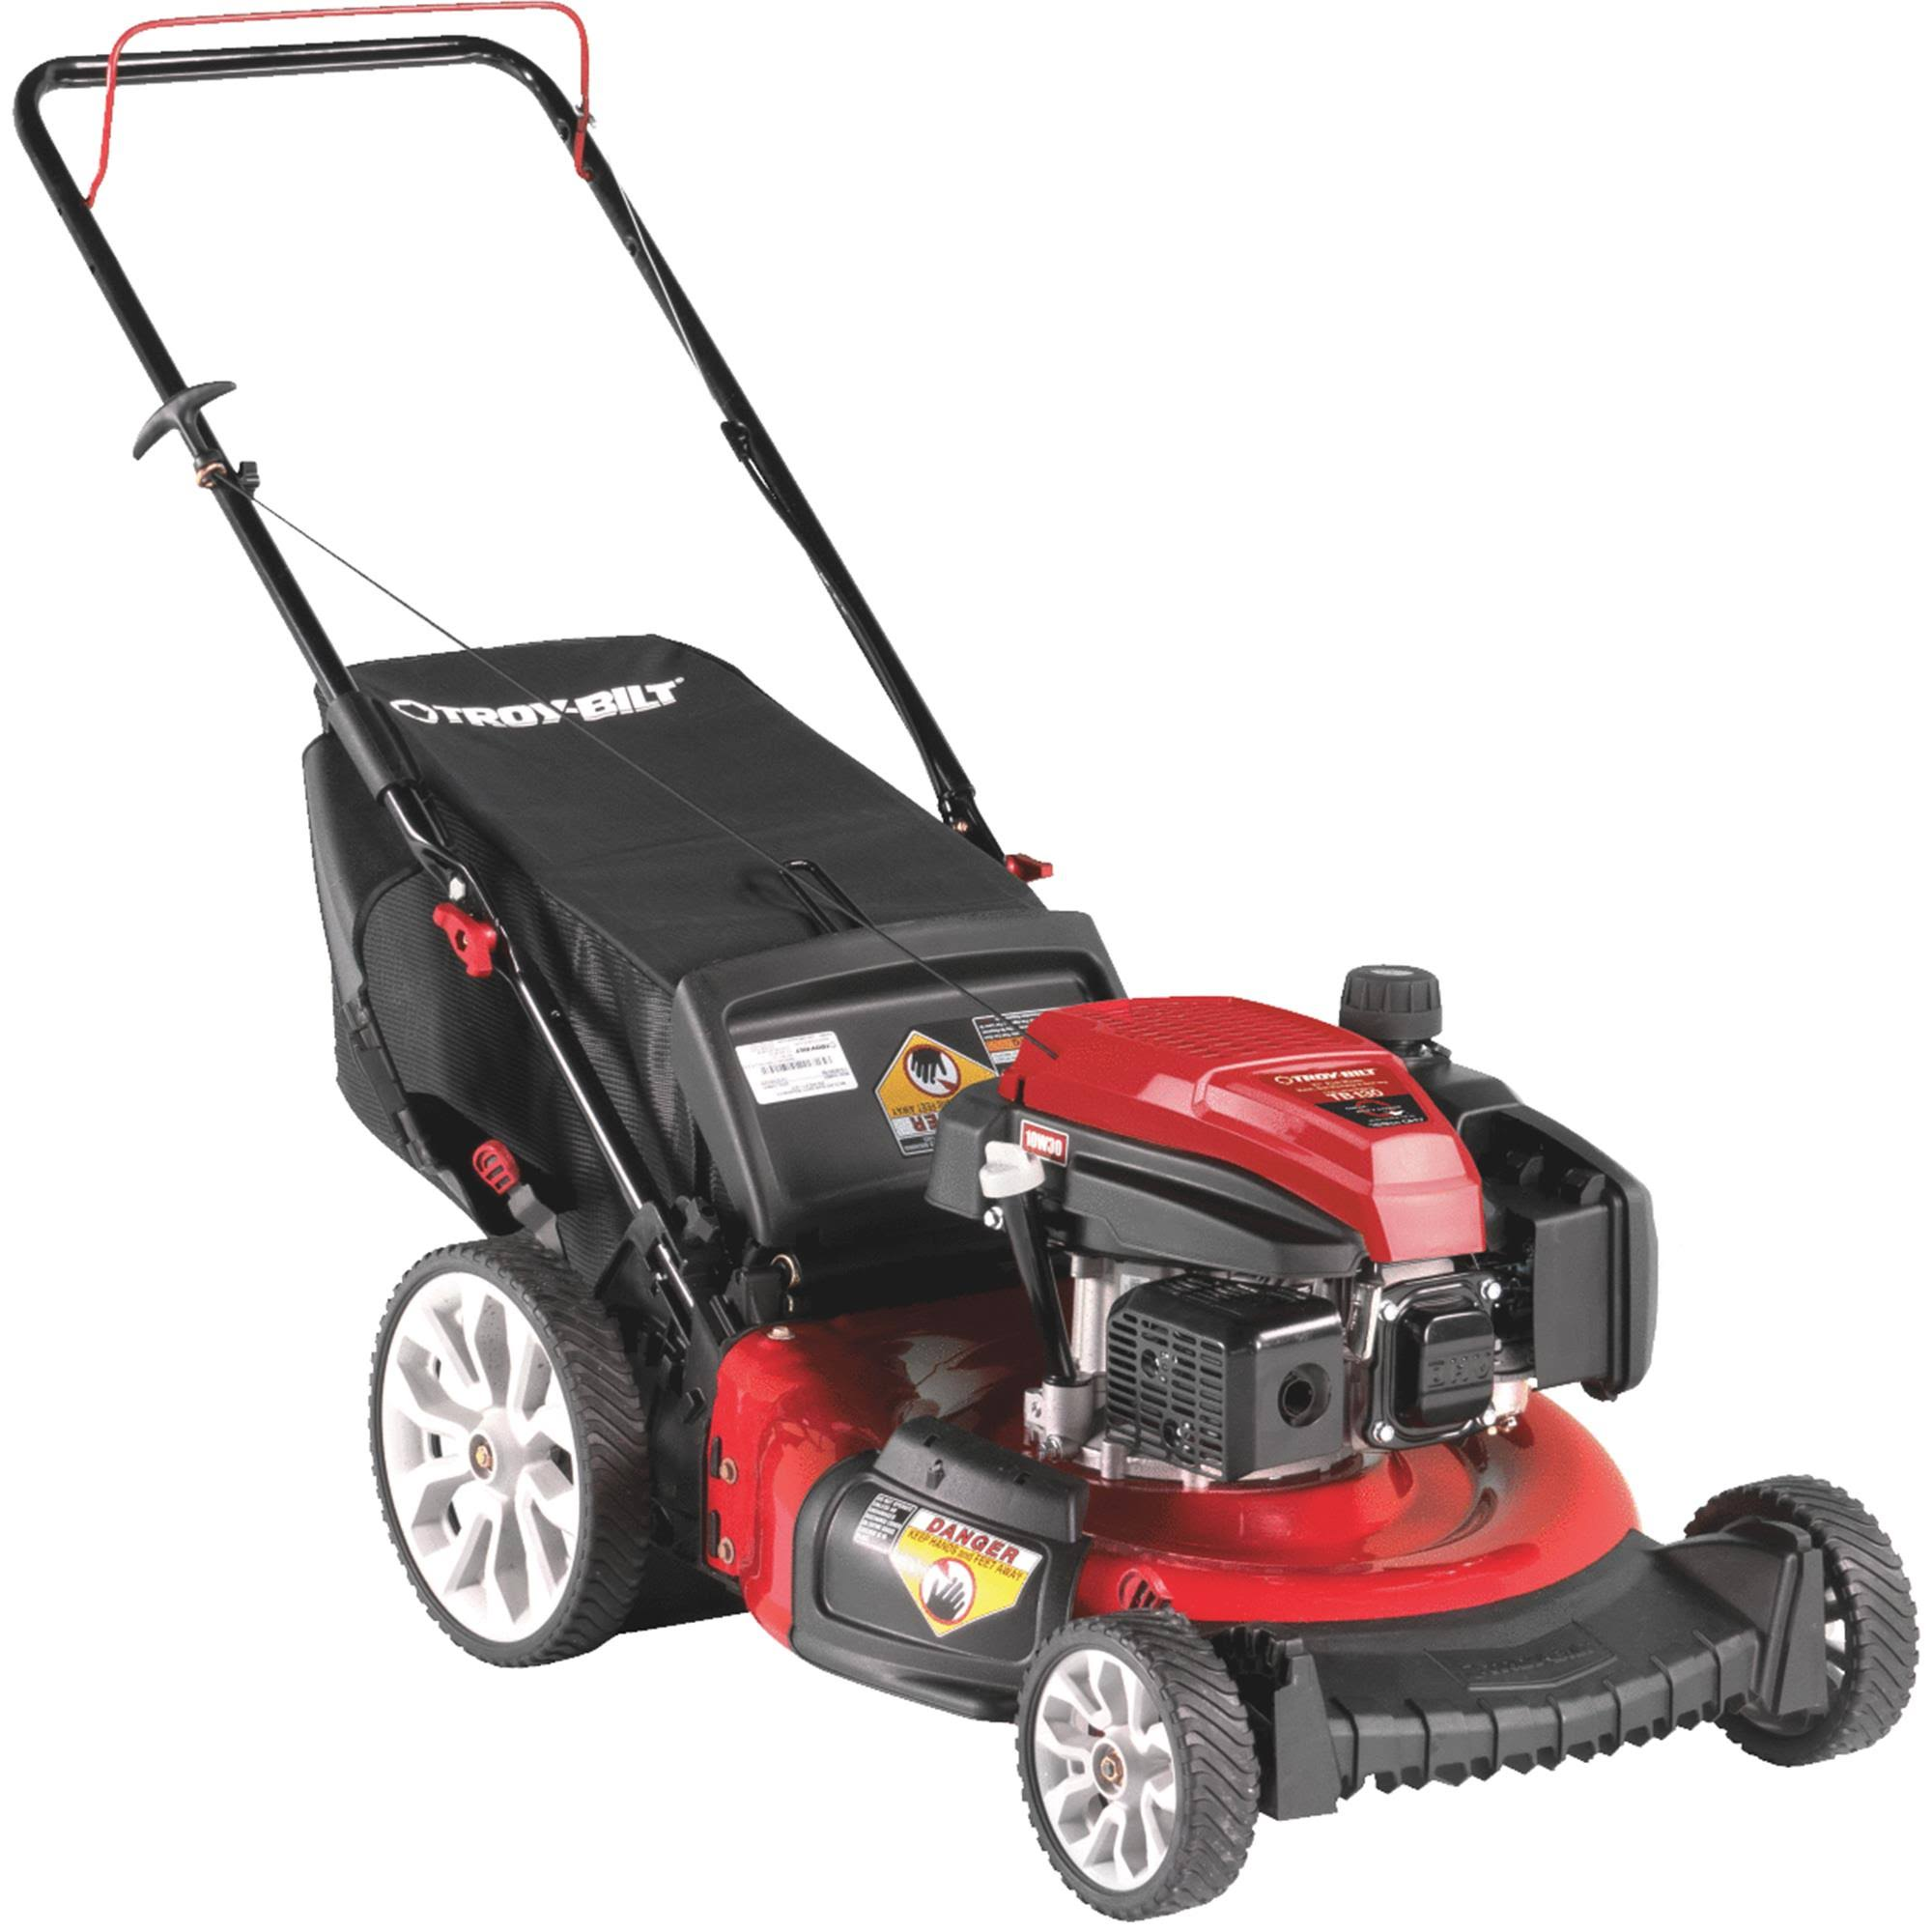 "Troy-Bilt TB130 Gas Walk Behind Push Mower - 21"", 159cc"